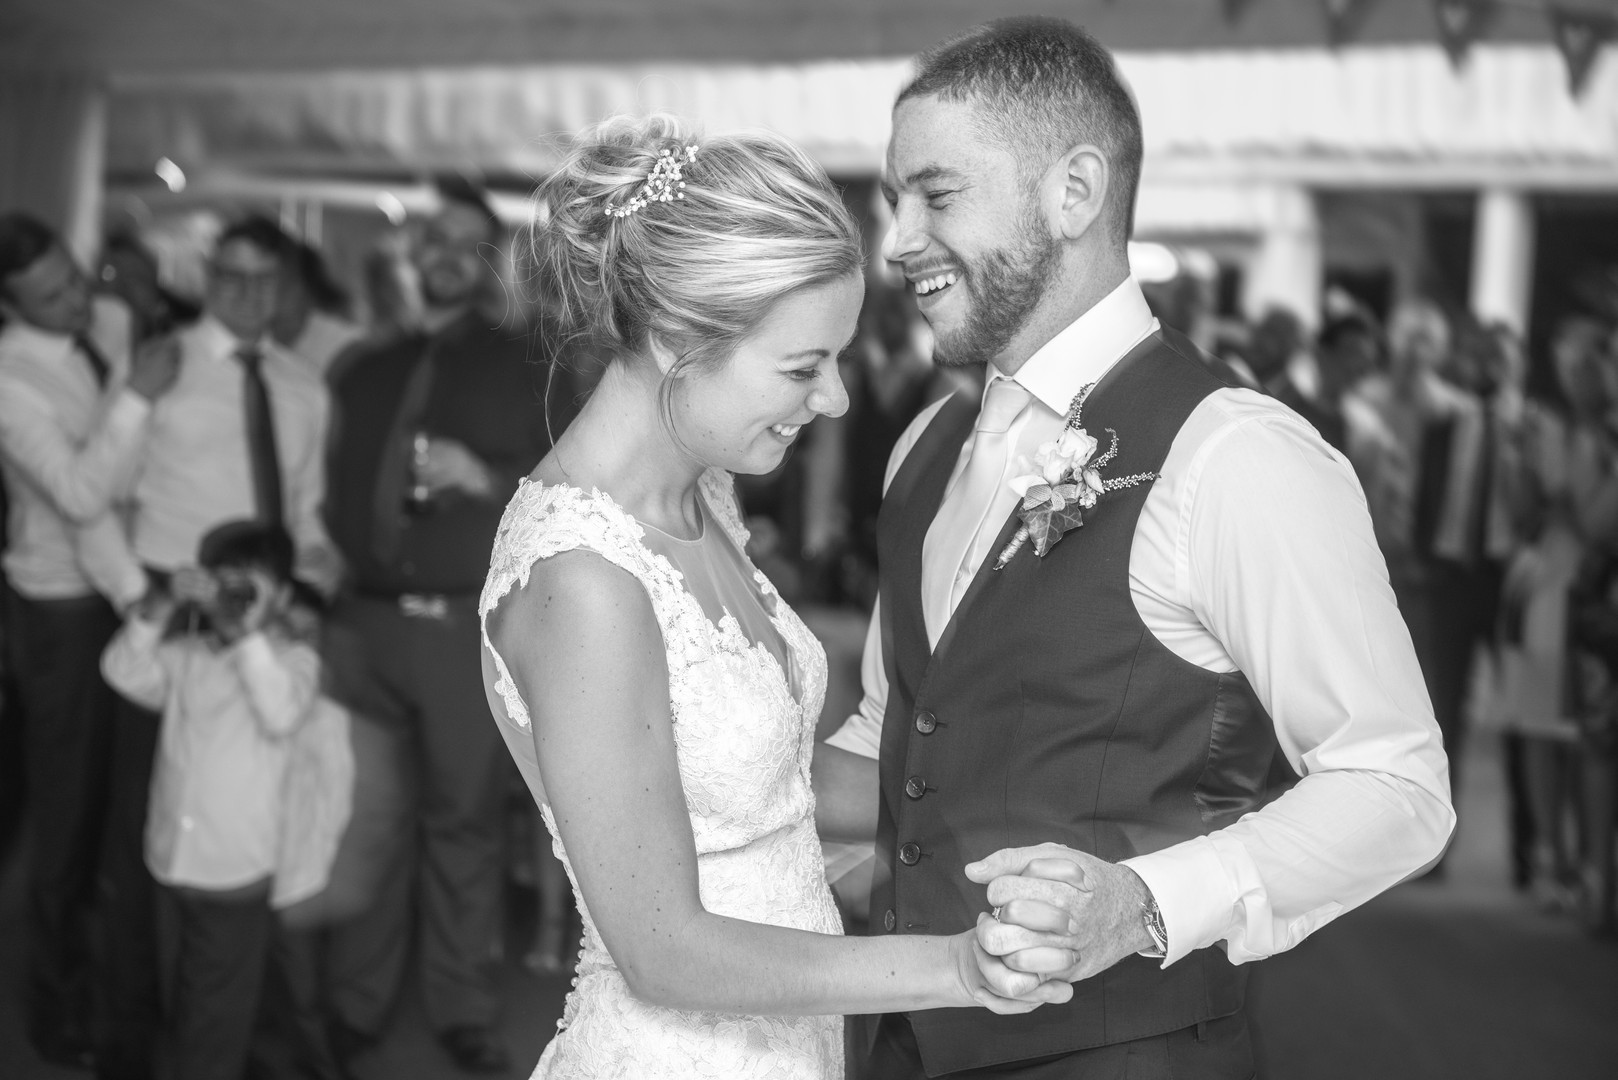 Bride and groom share a moment first dance